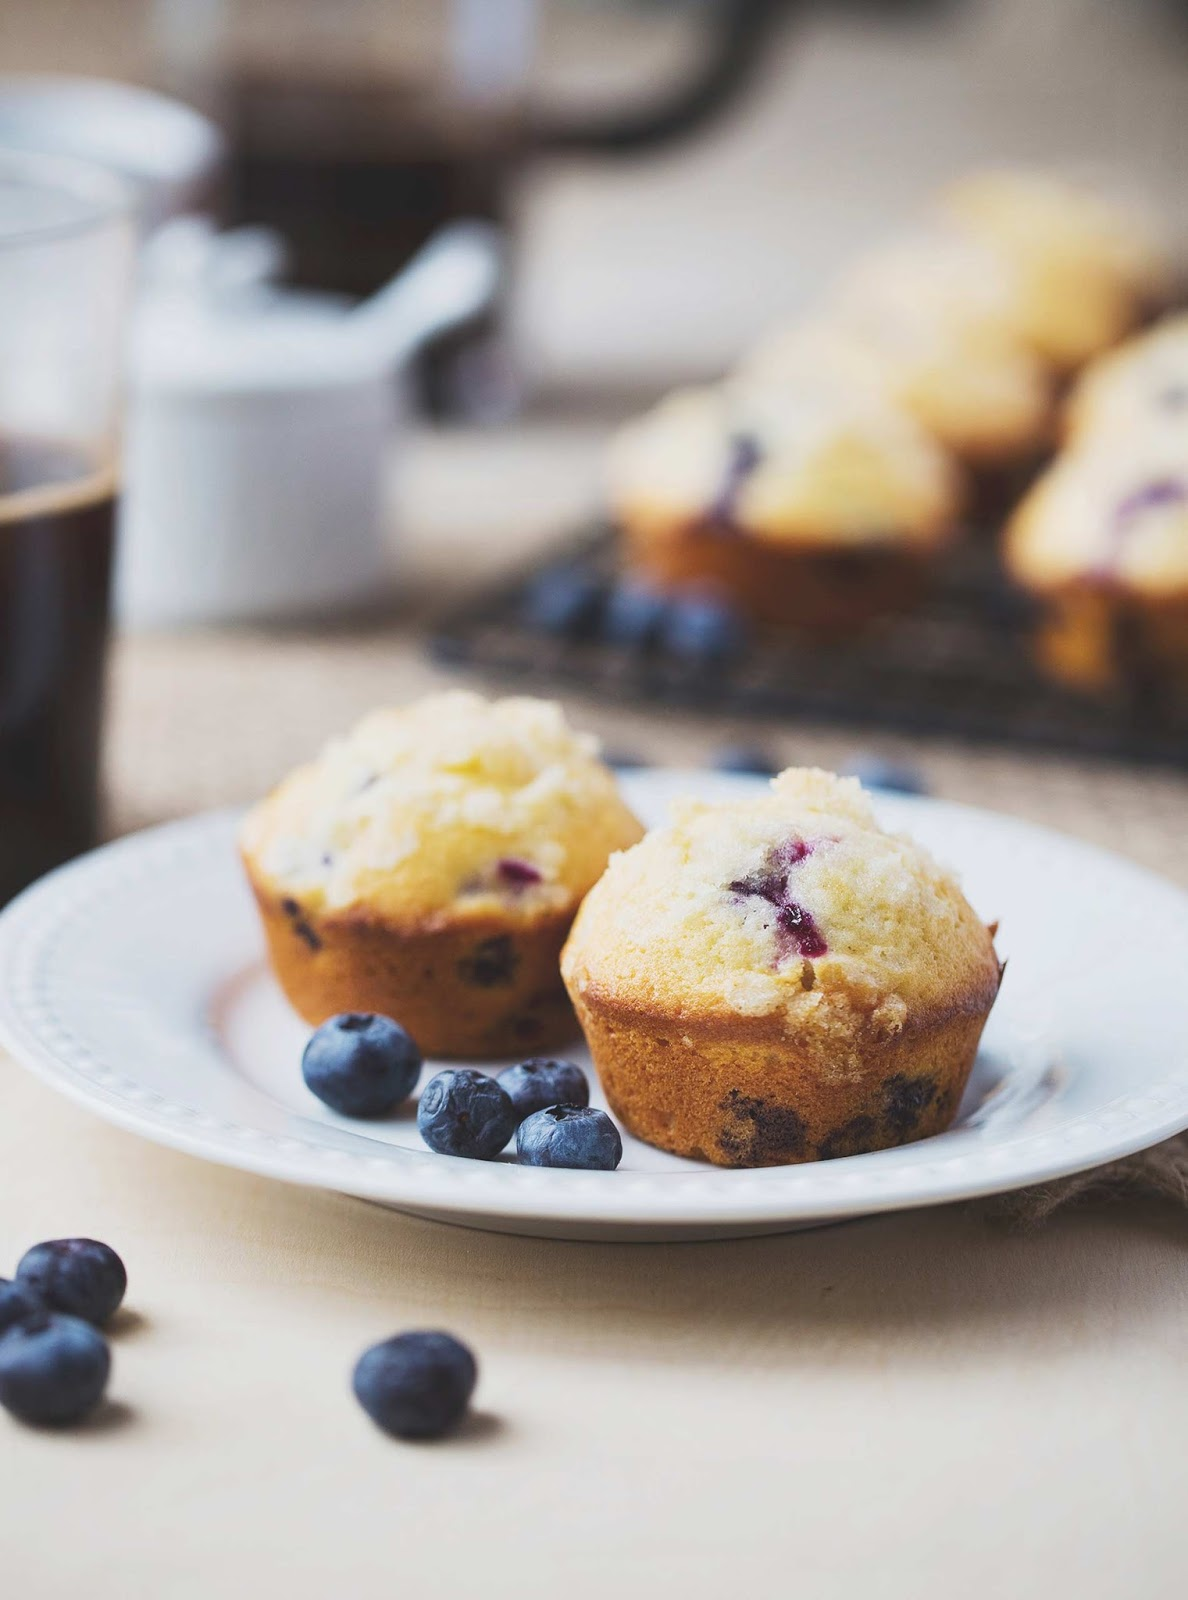 Buttermilk-Blueberry-Muffin-Baking